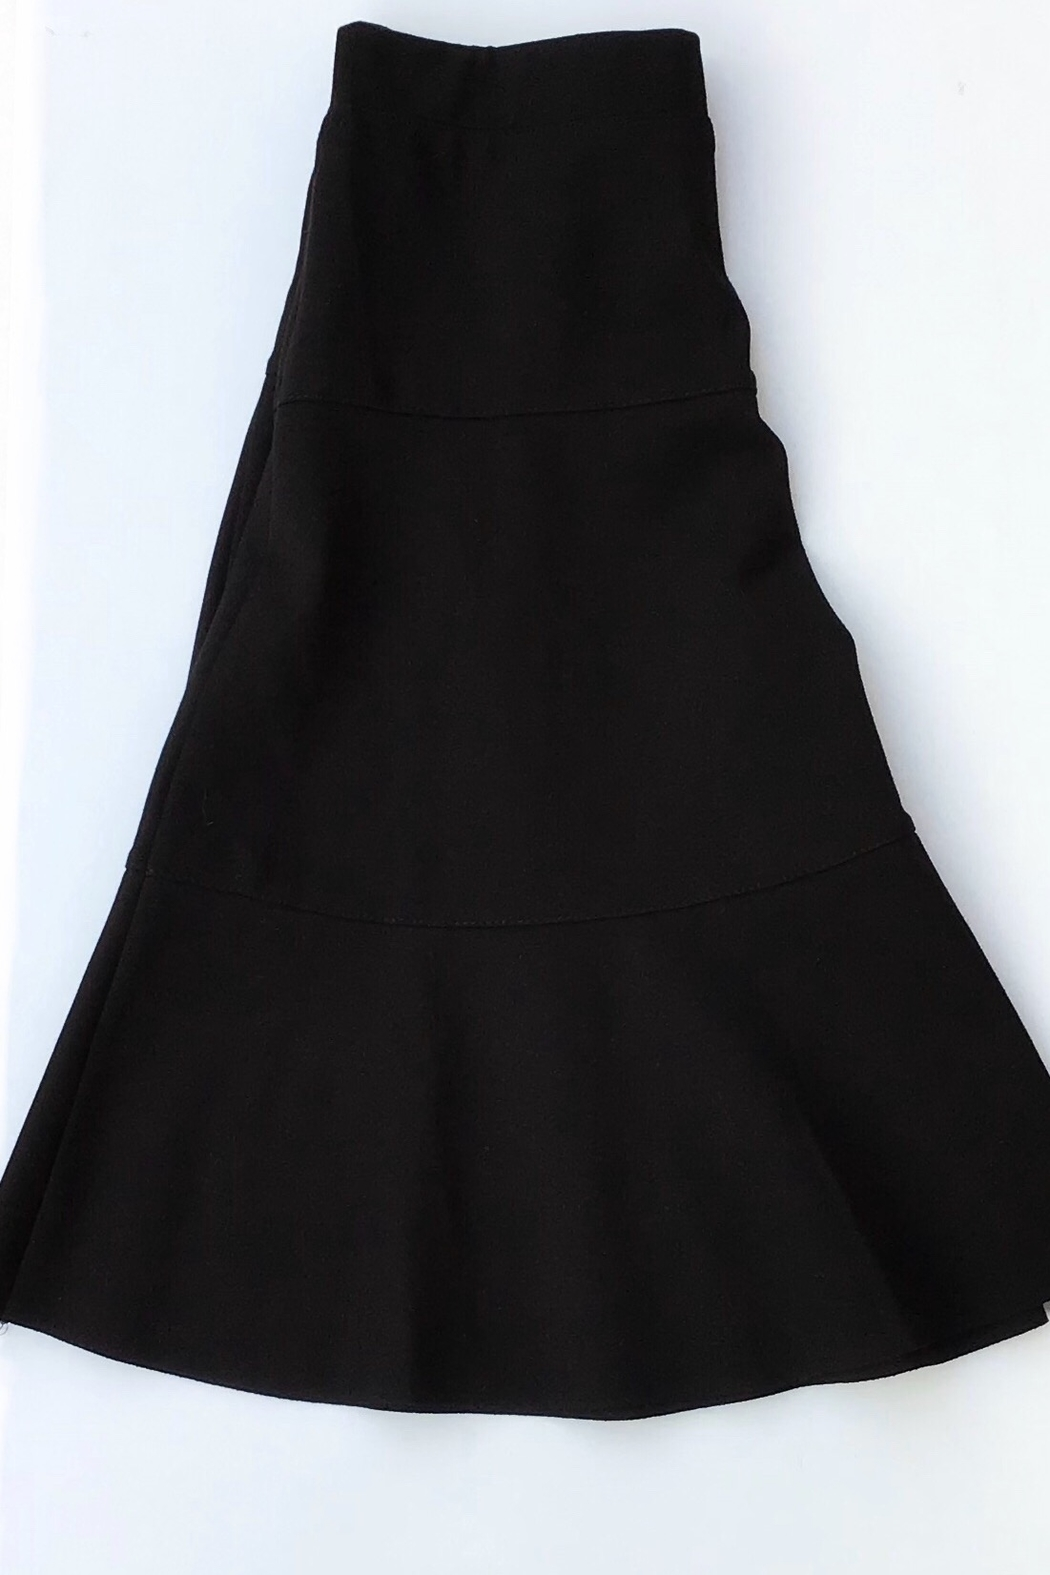 Meli by FAME TIER PONTE SKIRT 23 INCH - Front Cropped Image